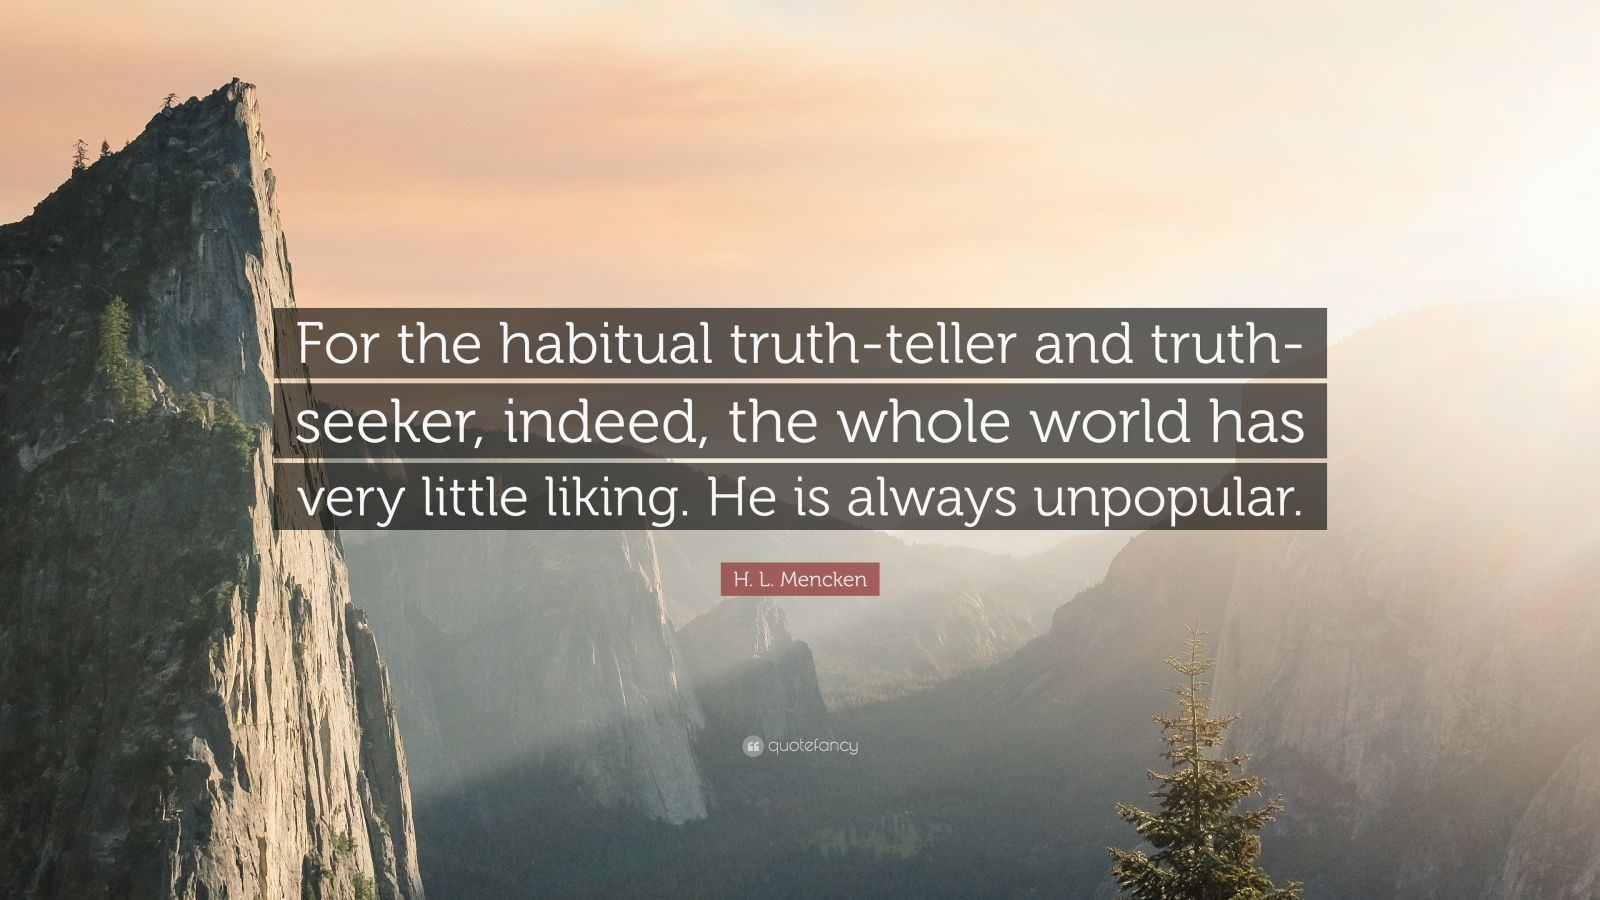 """H. L. Mencken Quote: """"For the habitual truth-teller and truth-seeker, indeed, the whole world has very little liking. He is always unpopular."""""""